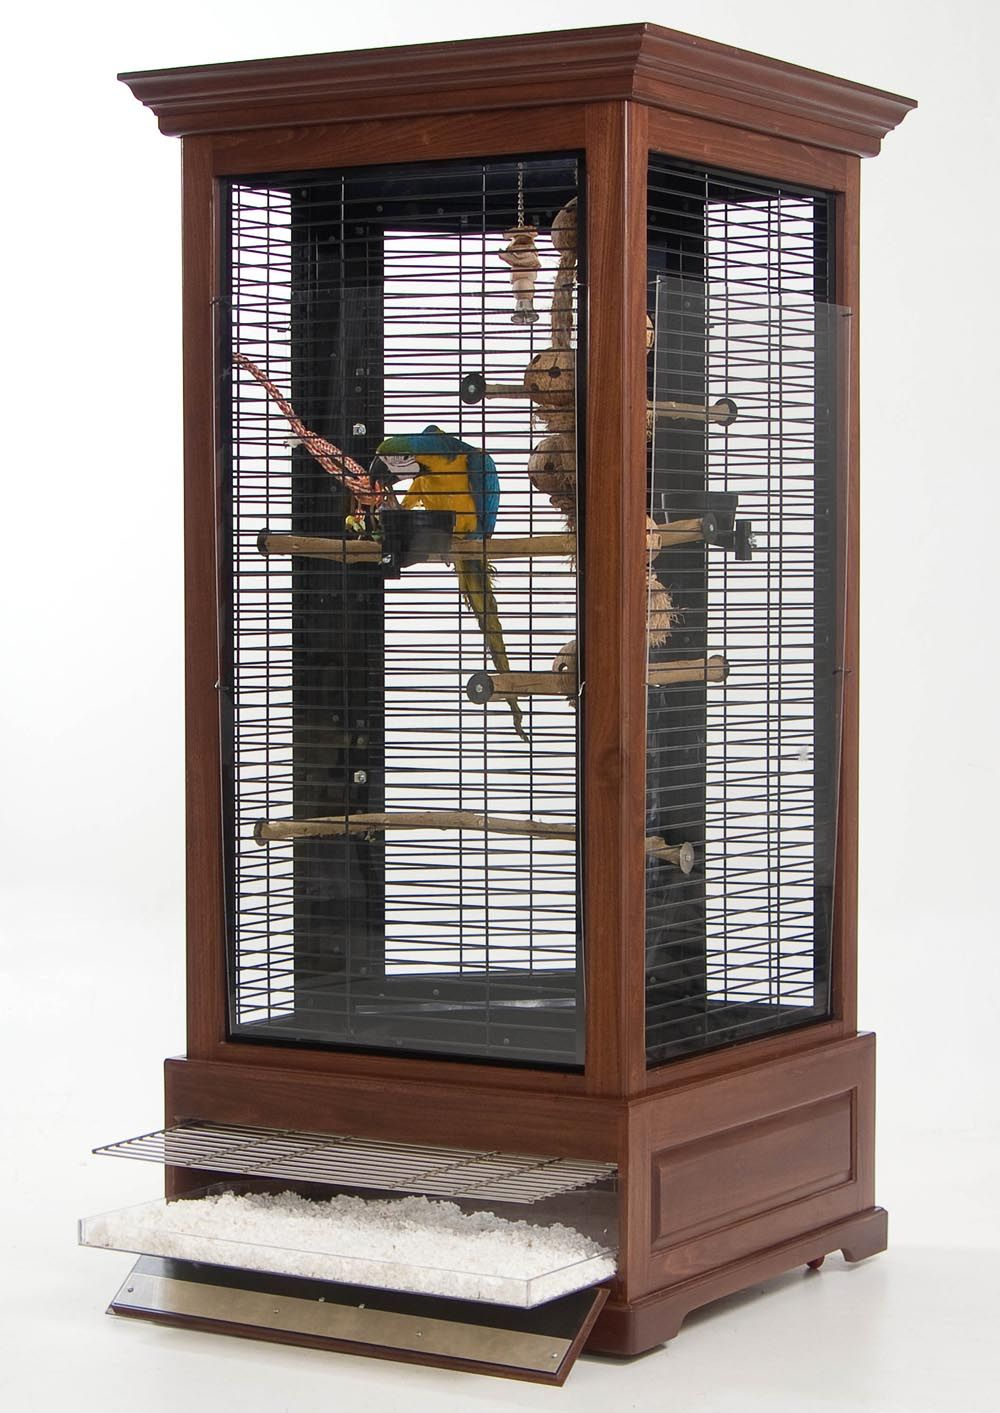 My Kinda Bird Cage For Parrots That Is Anyways More Like A Furniture Style Then Just Metal Wire